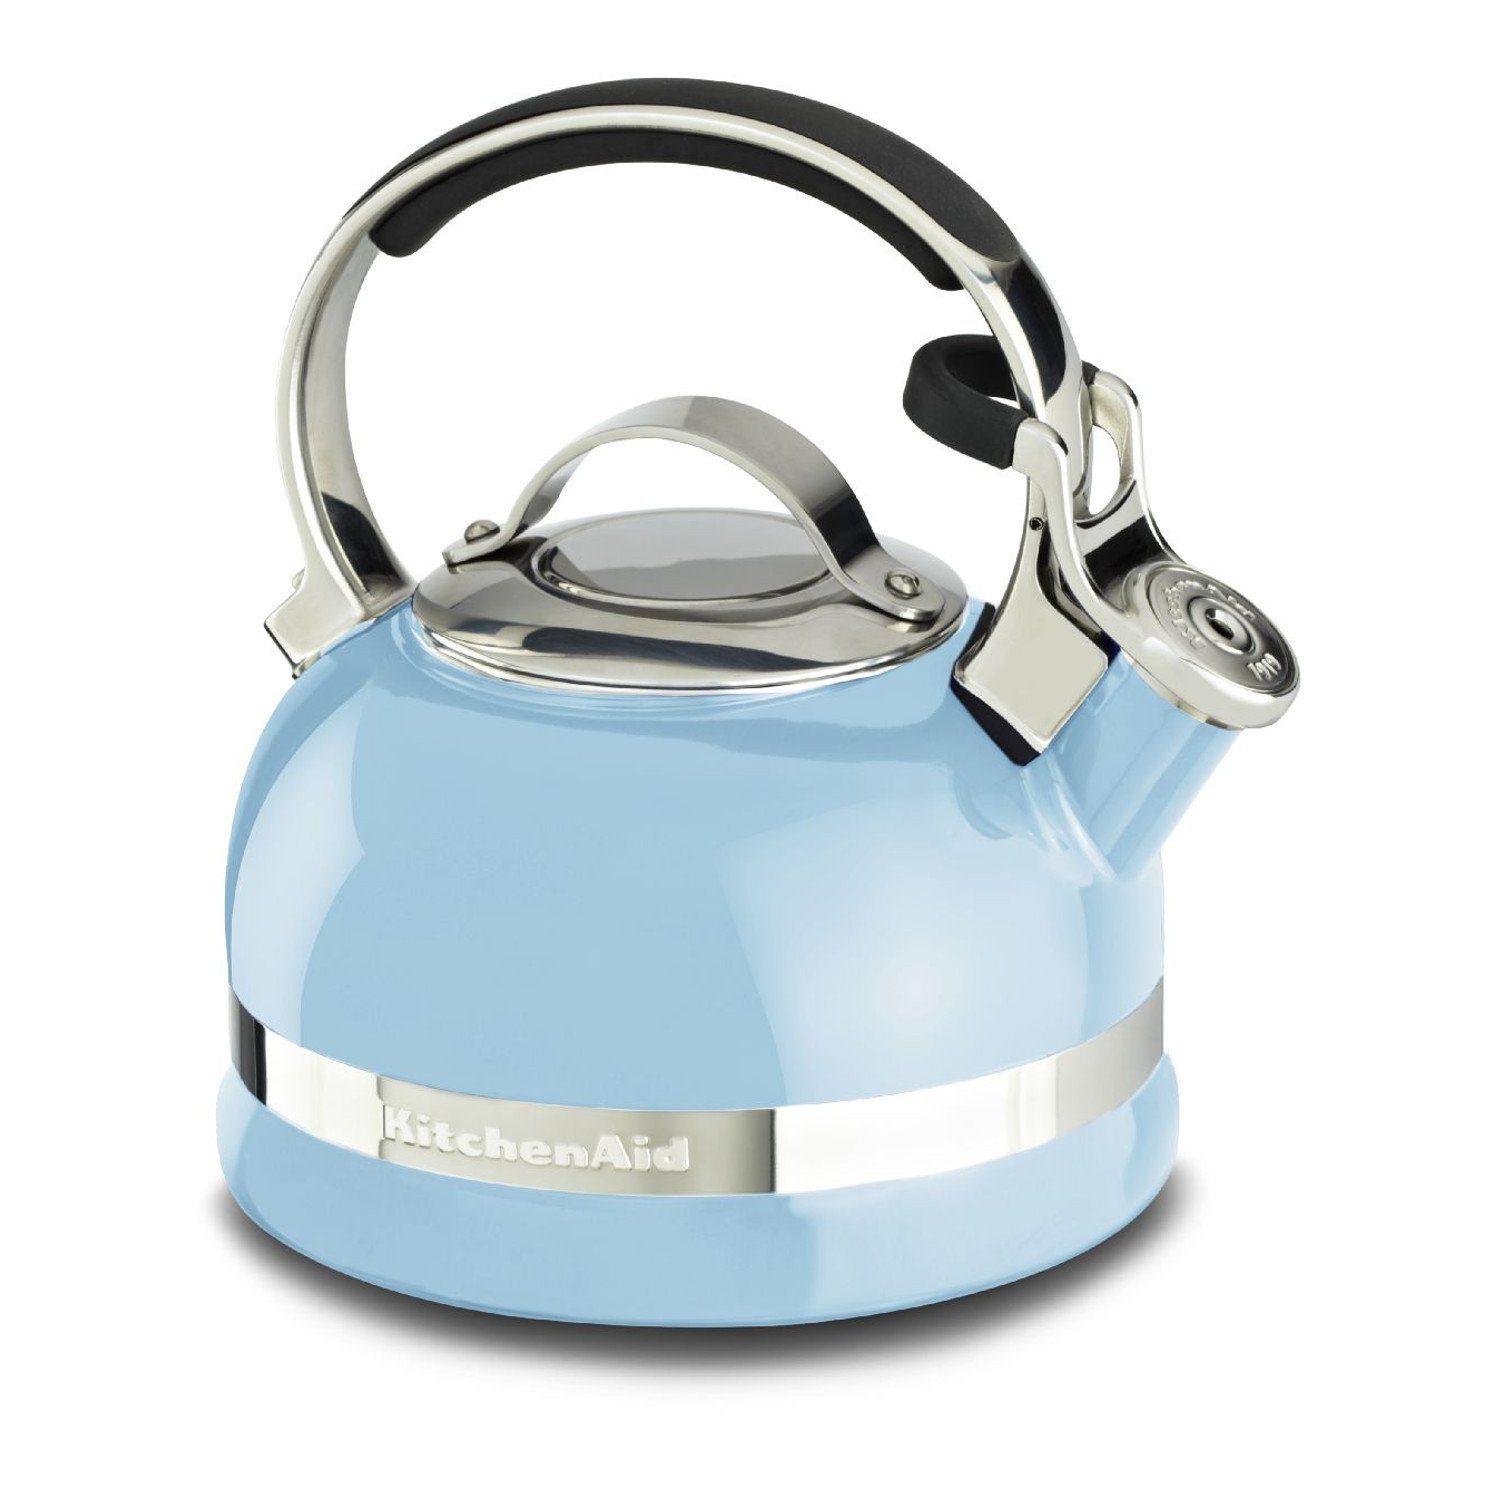 amazoncom kitchenaid ktensbeu quart kettle with full  - amazoncom kitchenaid ktensbeu quart kettle with full stainlesssteel handle and trim band  cameo blue kitchen  dining